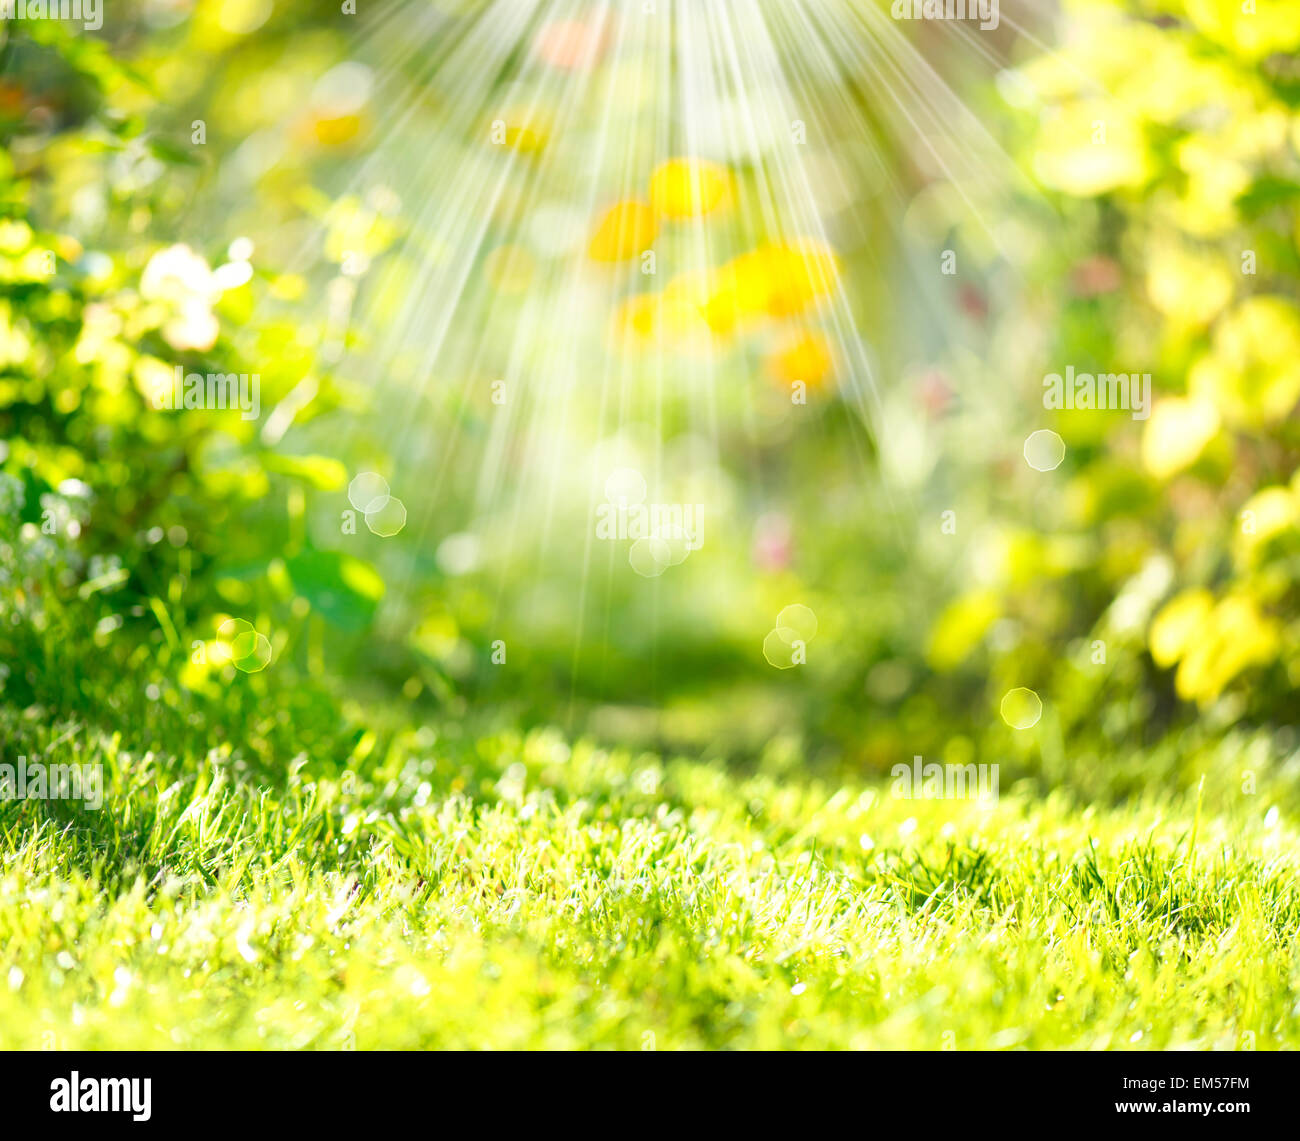 Nature Spring Blurred Background with Sunbeams - Stock Image